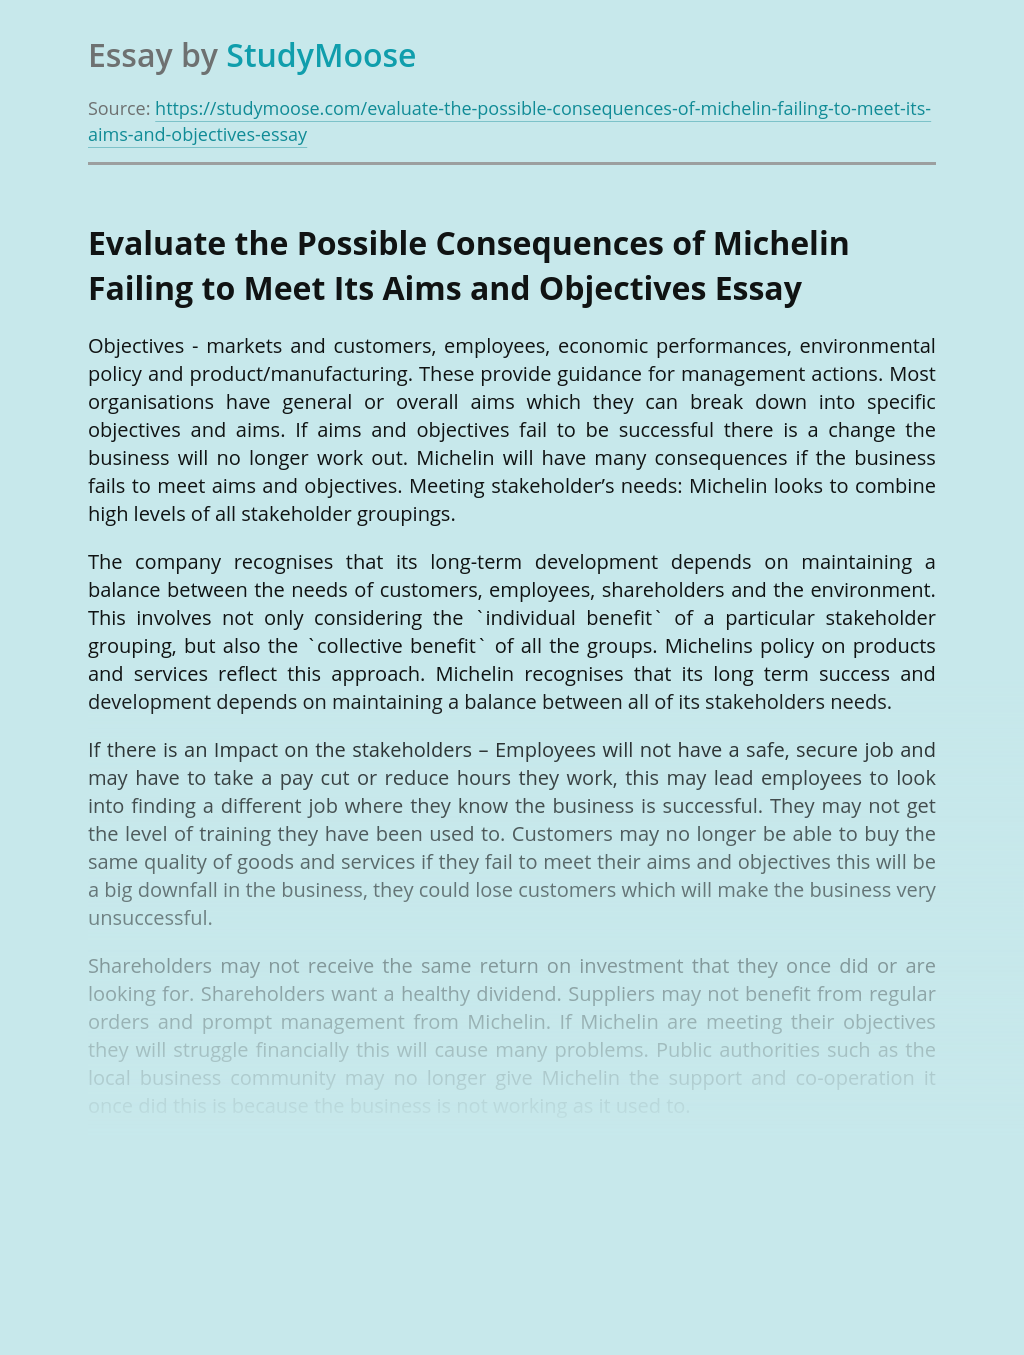 Evaluate the Possible Consequences of Michelin Failing to Meet Its Aims and Objectives